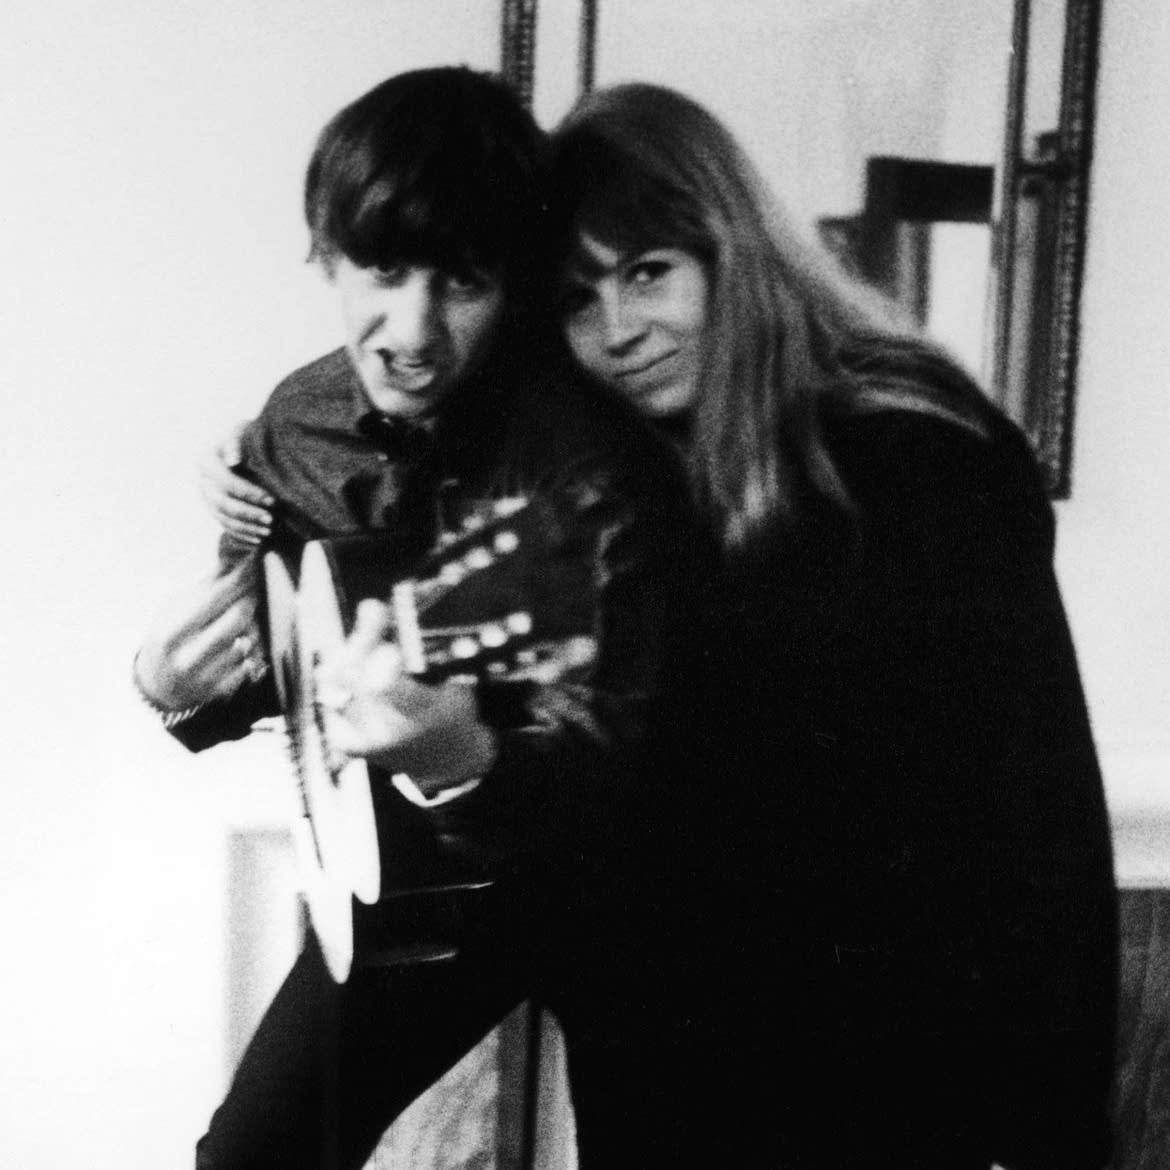 Ringo Starr and Astrid Kirchherr in an undated photo